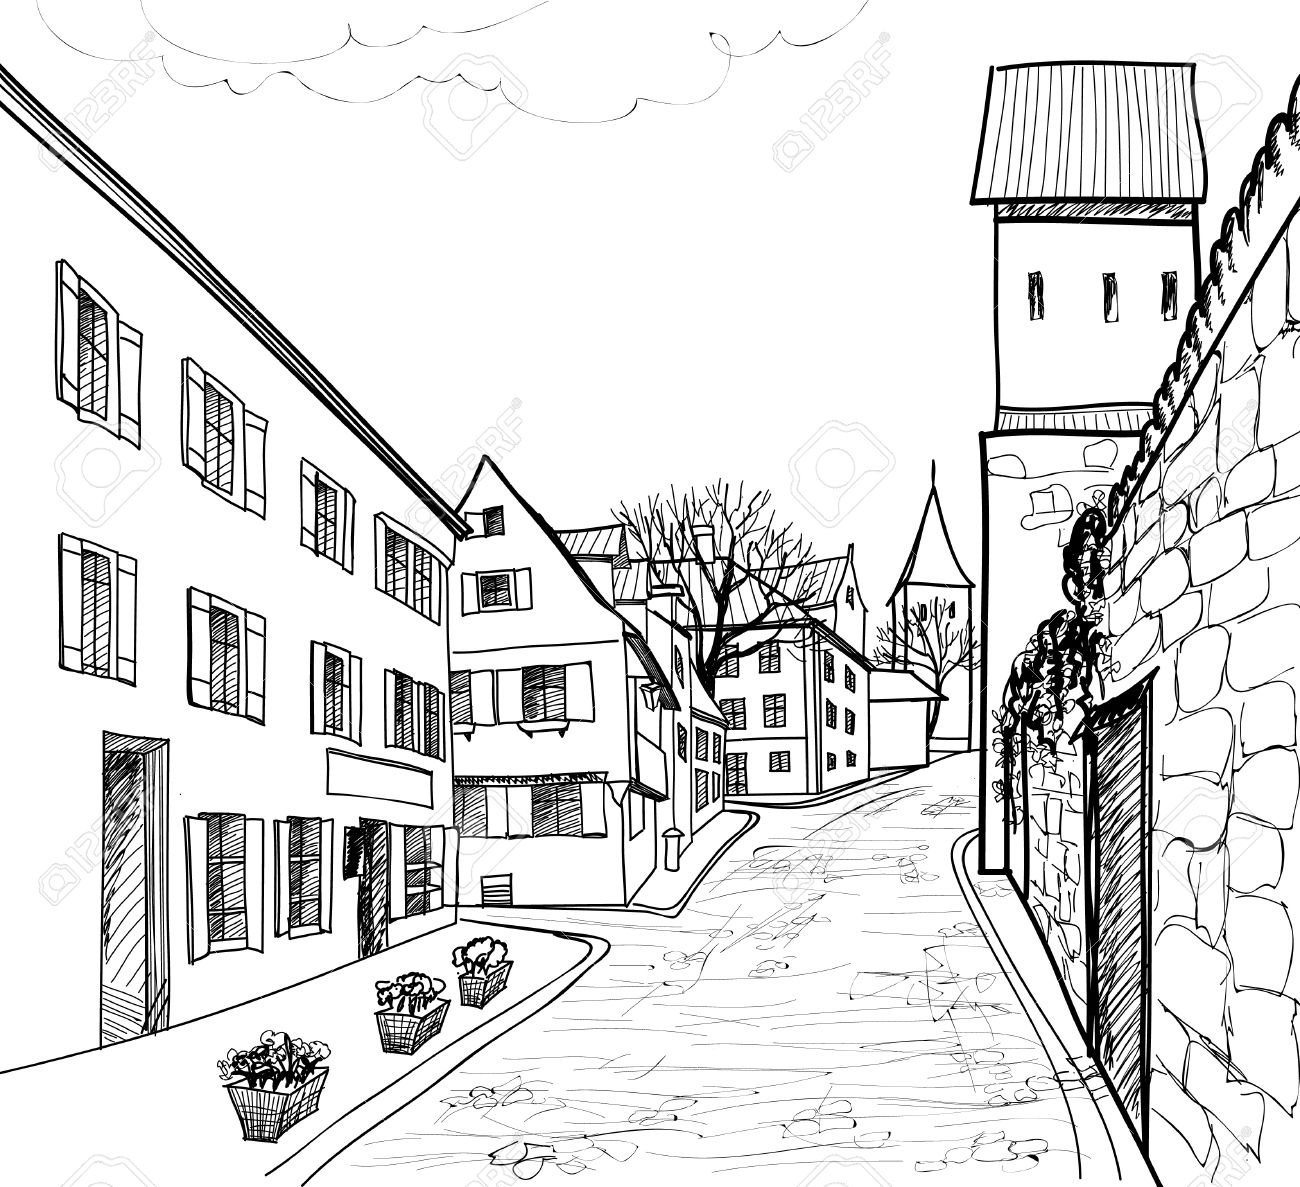 Pedestrian street in the old european city with tower on the background  Historic city street  Hand drawn sketch  Vector illustration Stock Vector - 21604113